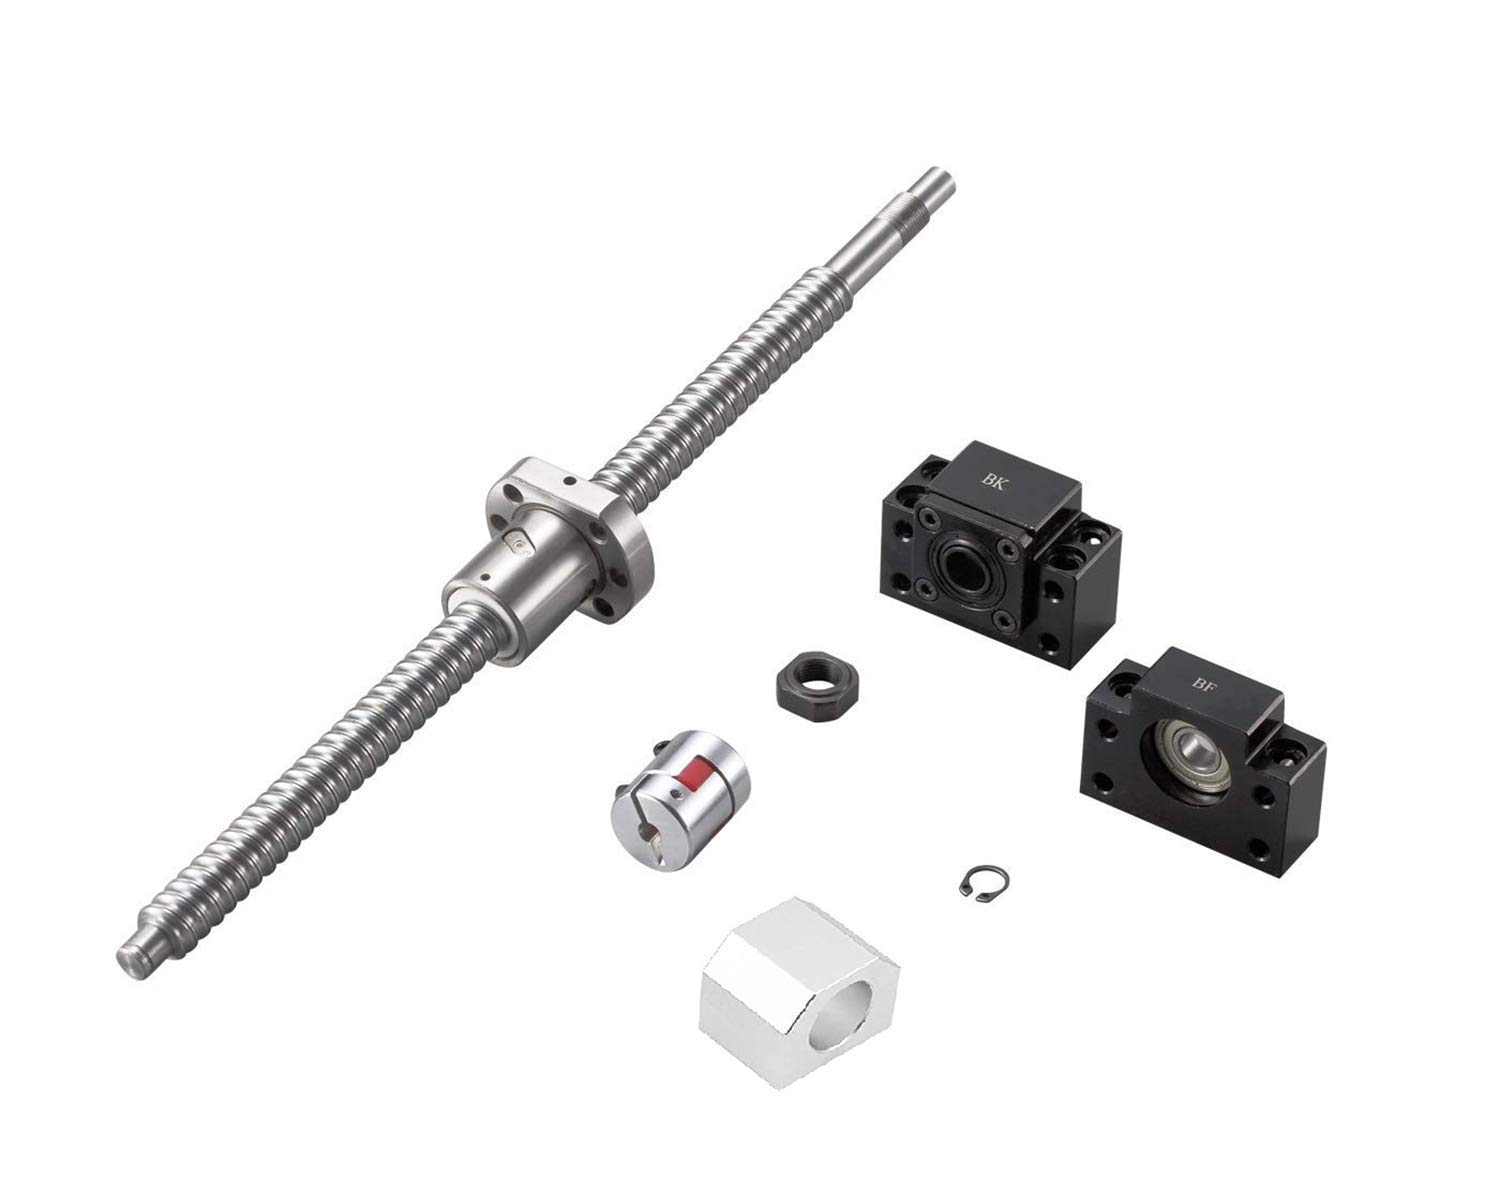 Mssoomm Ball Screw SFU1604 RM1604 16mm Length 100.39 inch BK//BF12 End Supports Coupler 2550mm with Ball Screw Nut Ball Screw Nut Housing with End Machining for CNC Machine